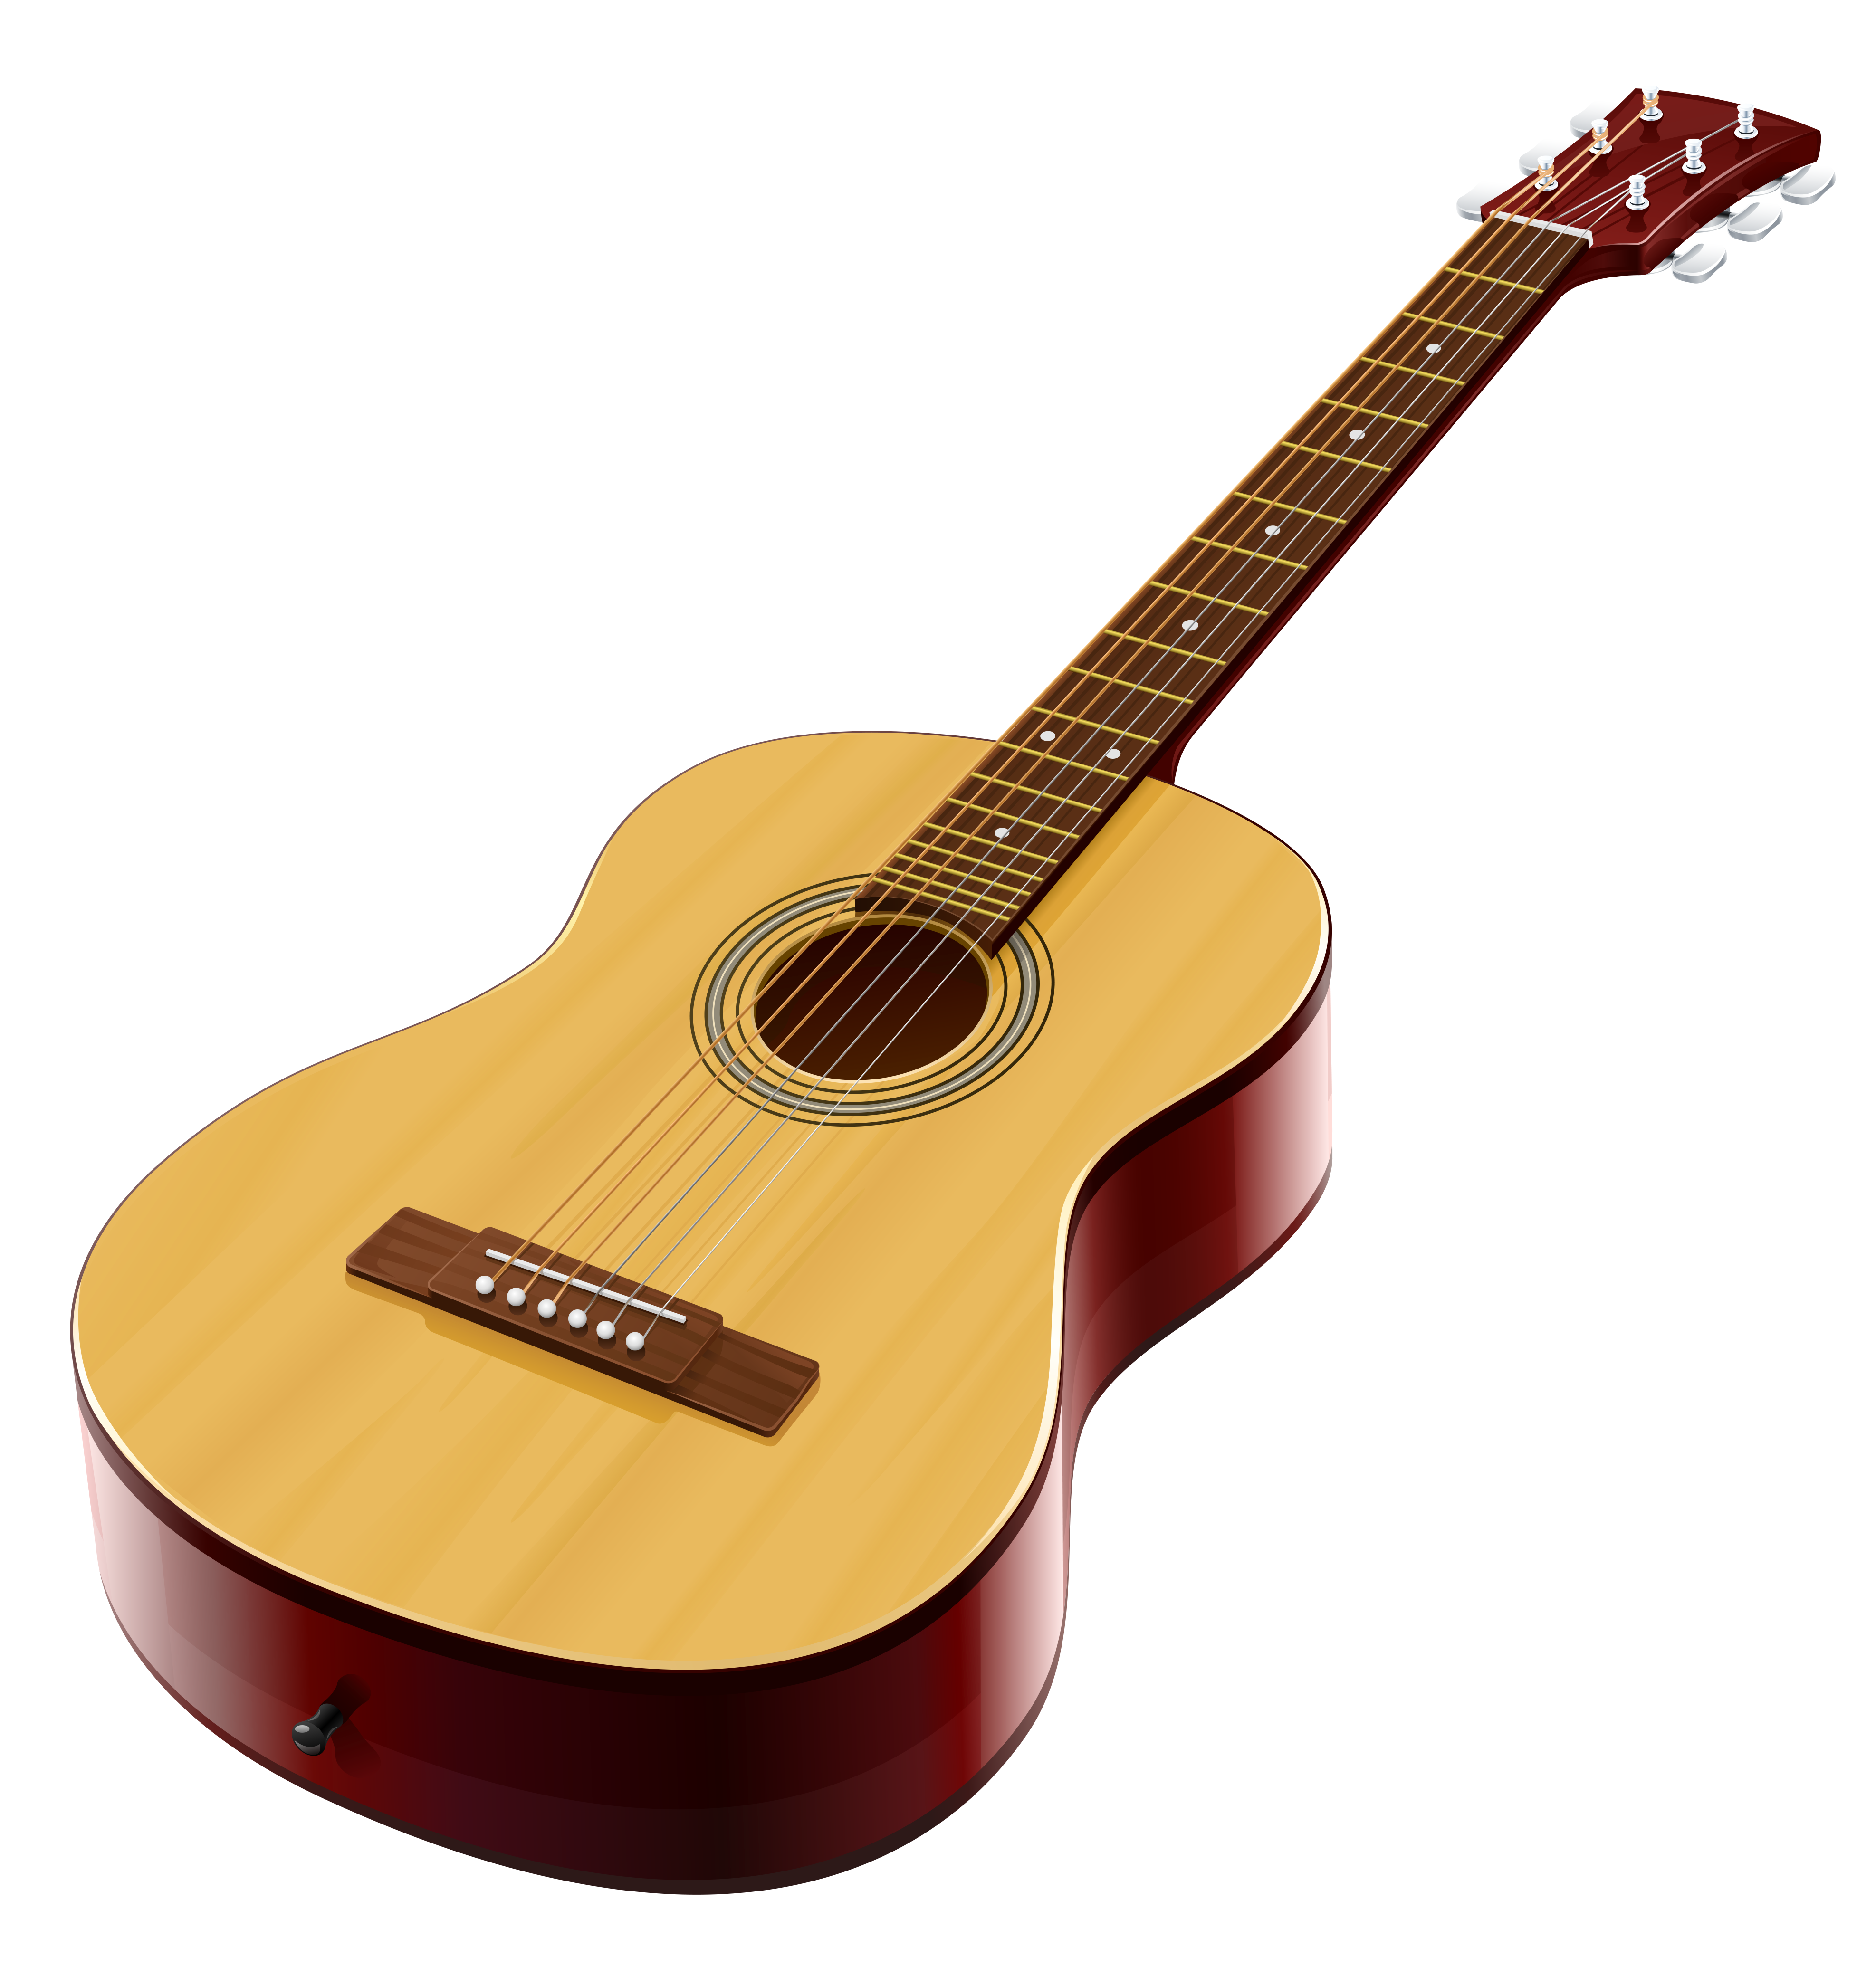 Classic png gallery yopriceville. Clipart guitar frame